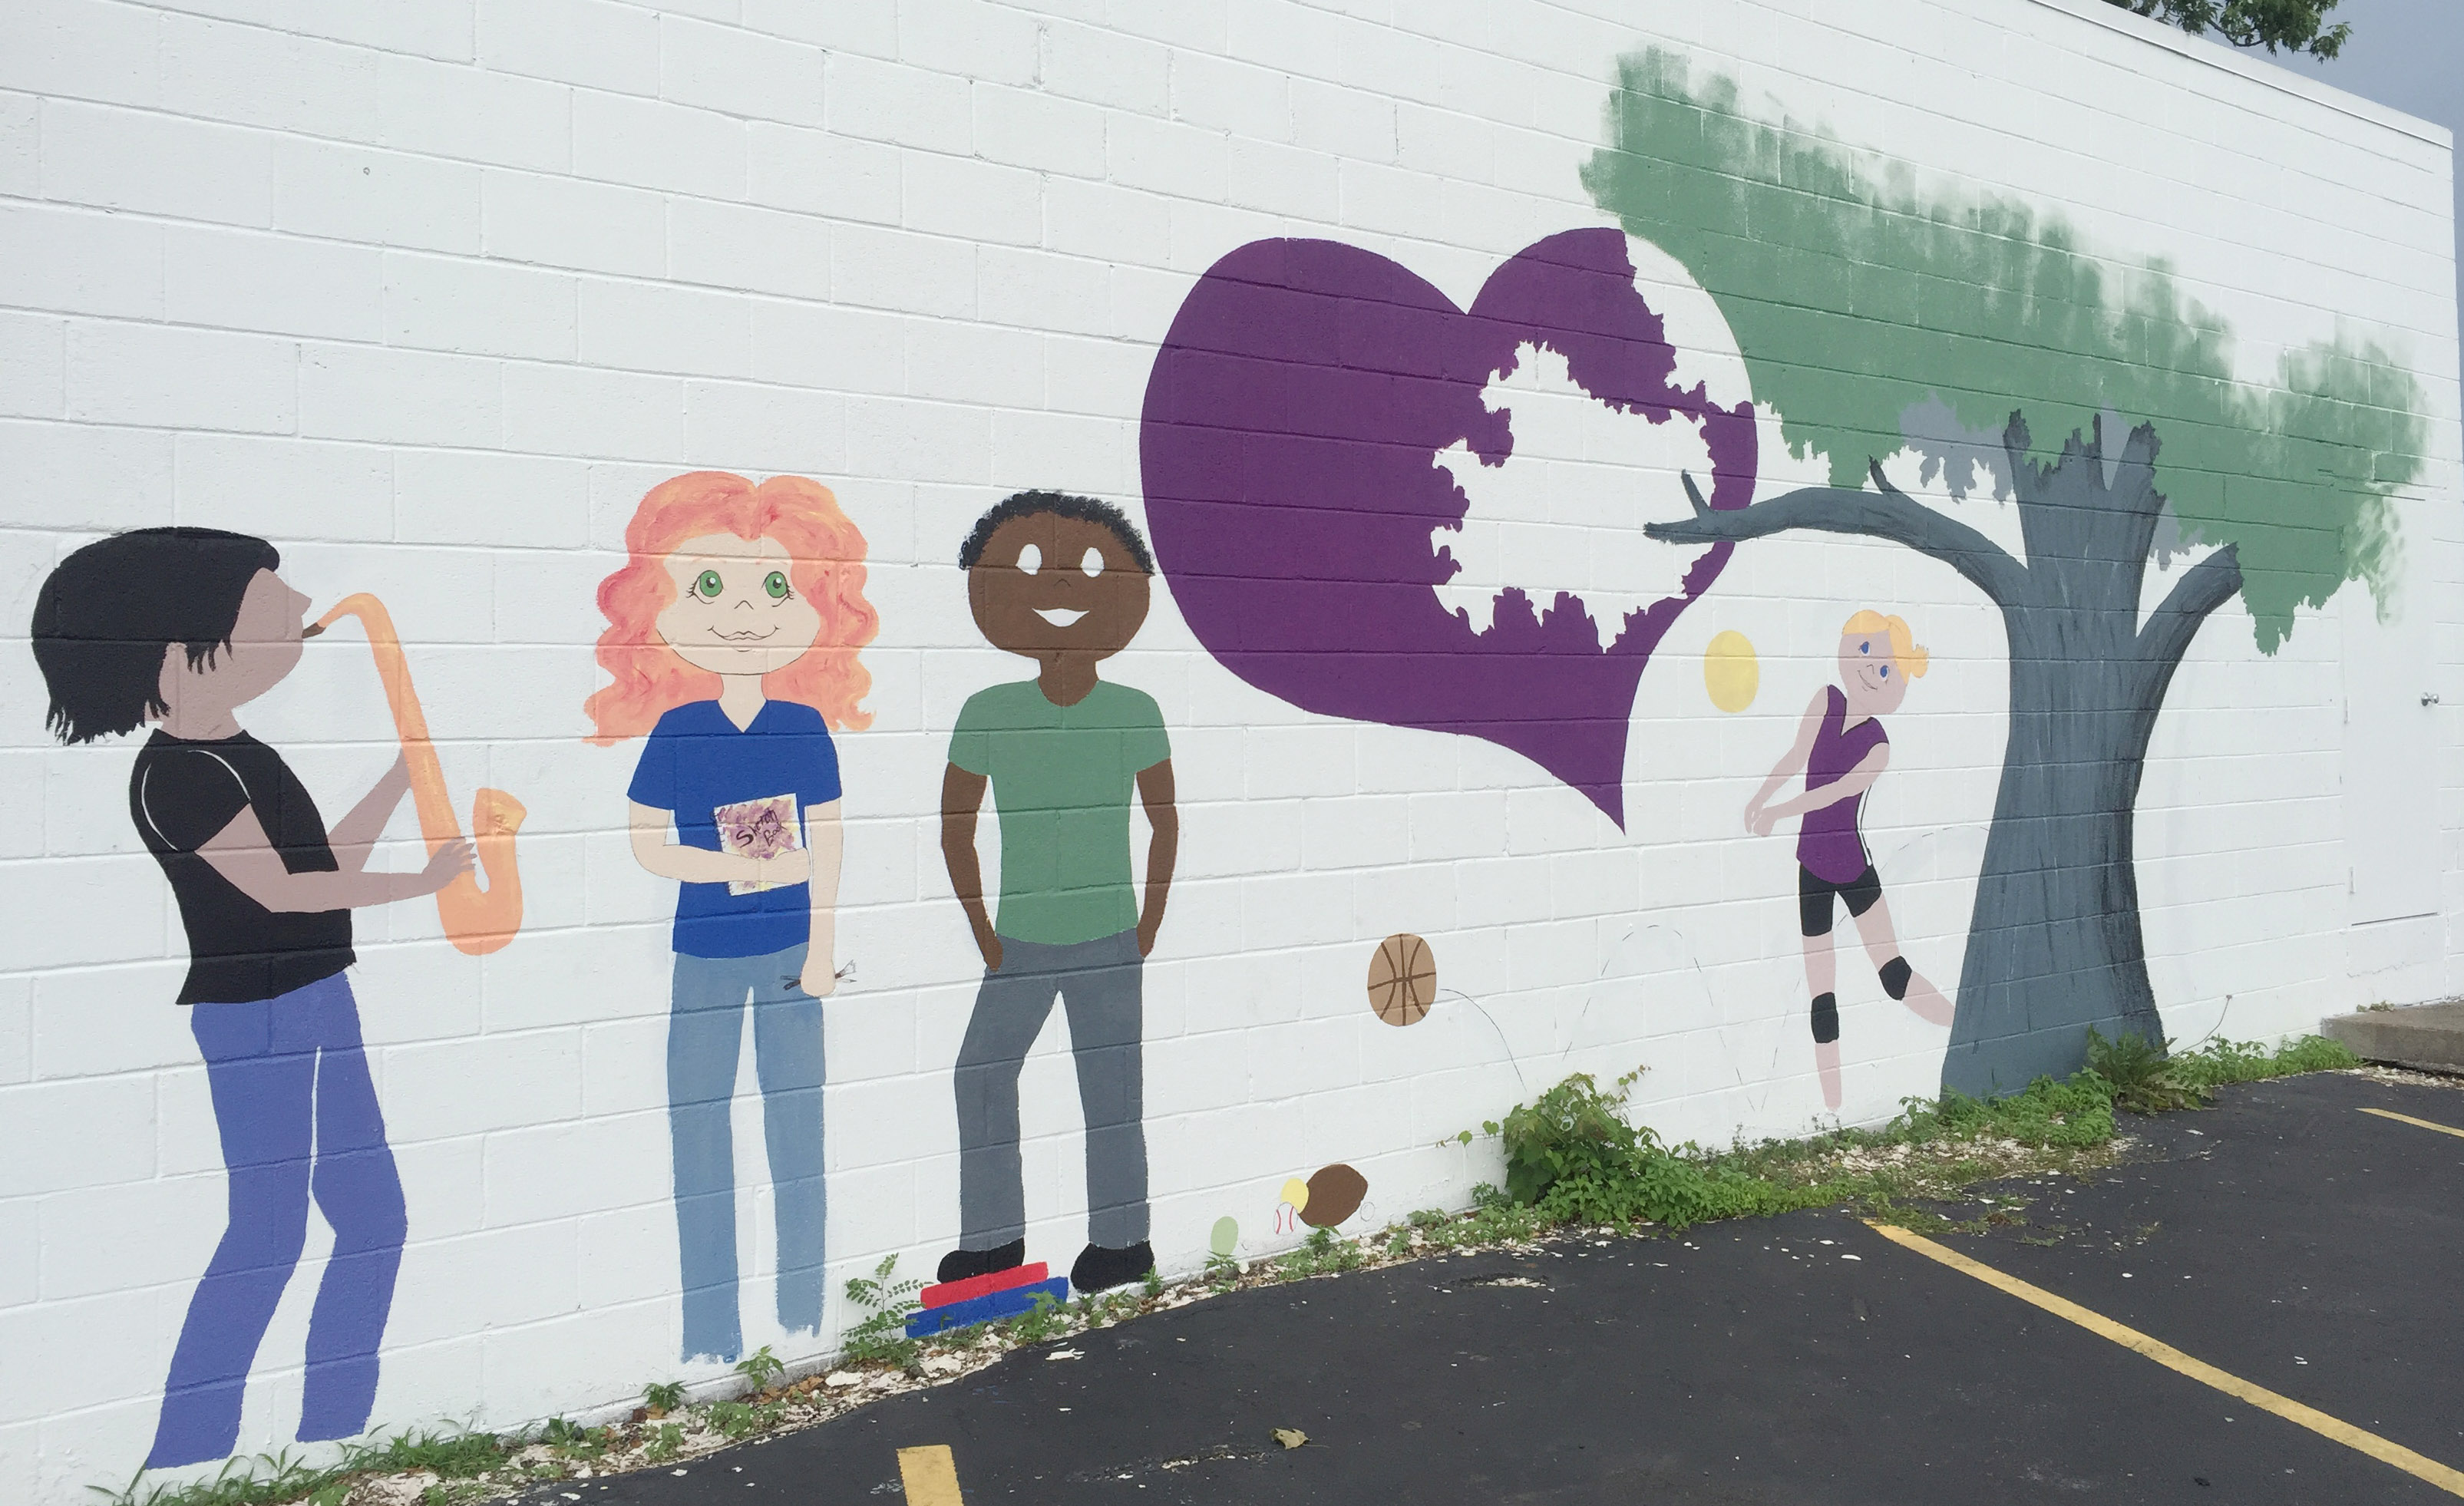 CHS art teacher Jo Ann Harris, along with art students Kyrsten Hill, who graduated from CHS in May, and Jasmine Cox, who will be a senior this fall, have designed, drawn and painted this mural. The mural is painted on the outside wall of Dr. Harold Wilkerson's dental office on West Main Street, across from the CHS campus.